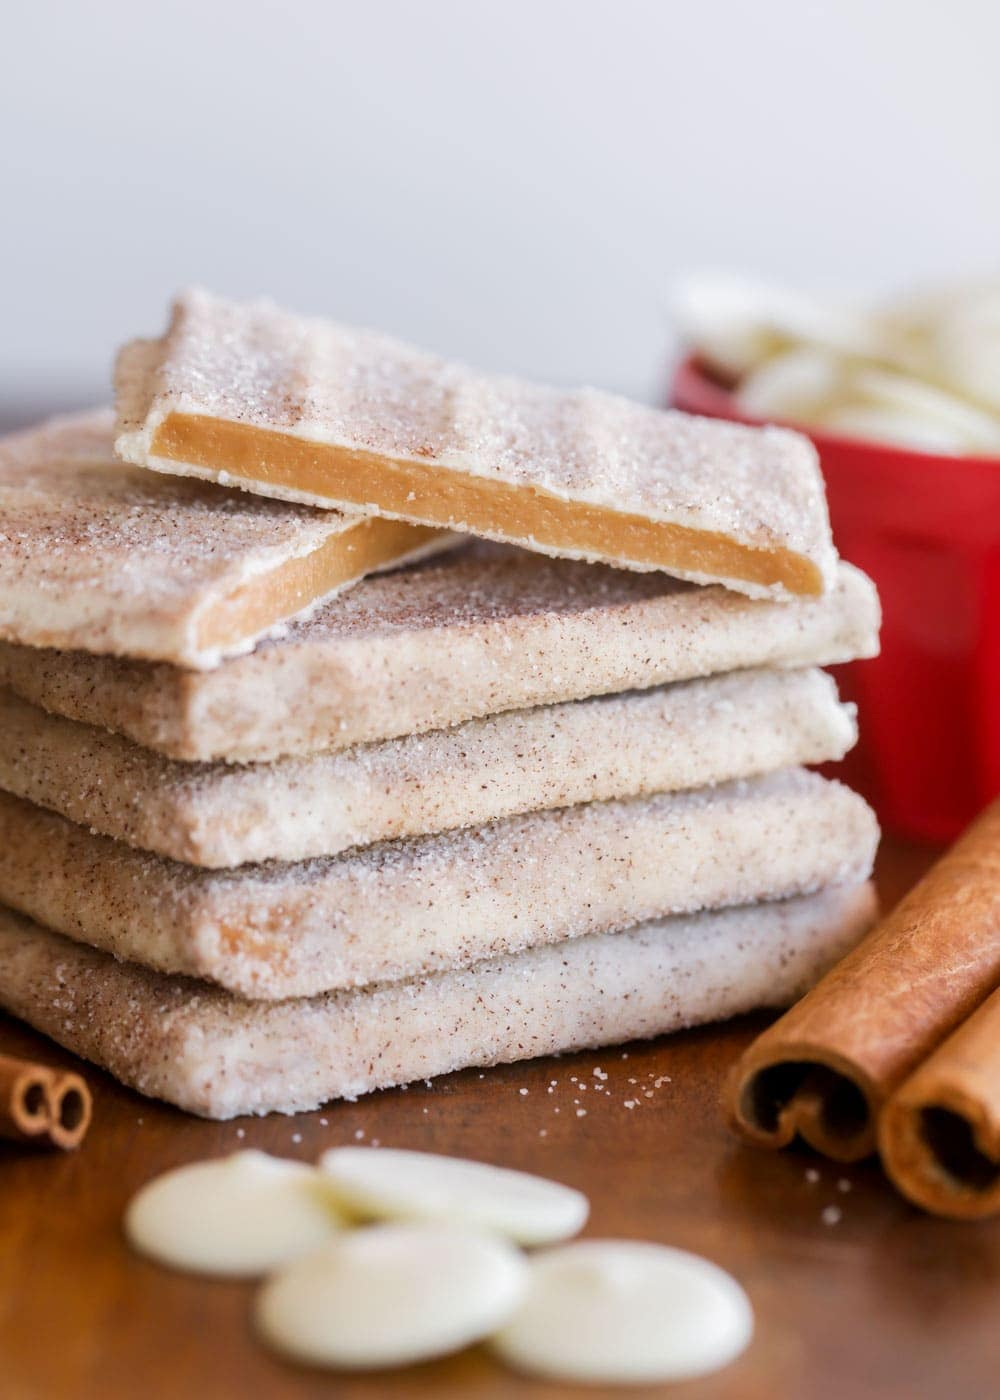 Churro toffee recipe